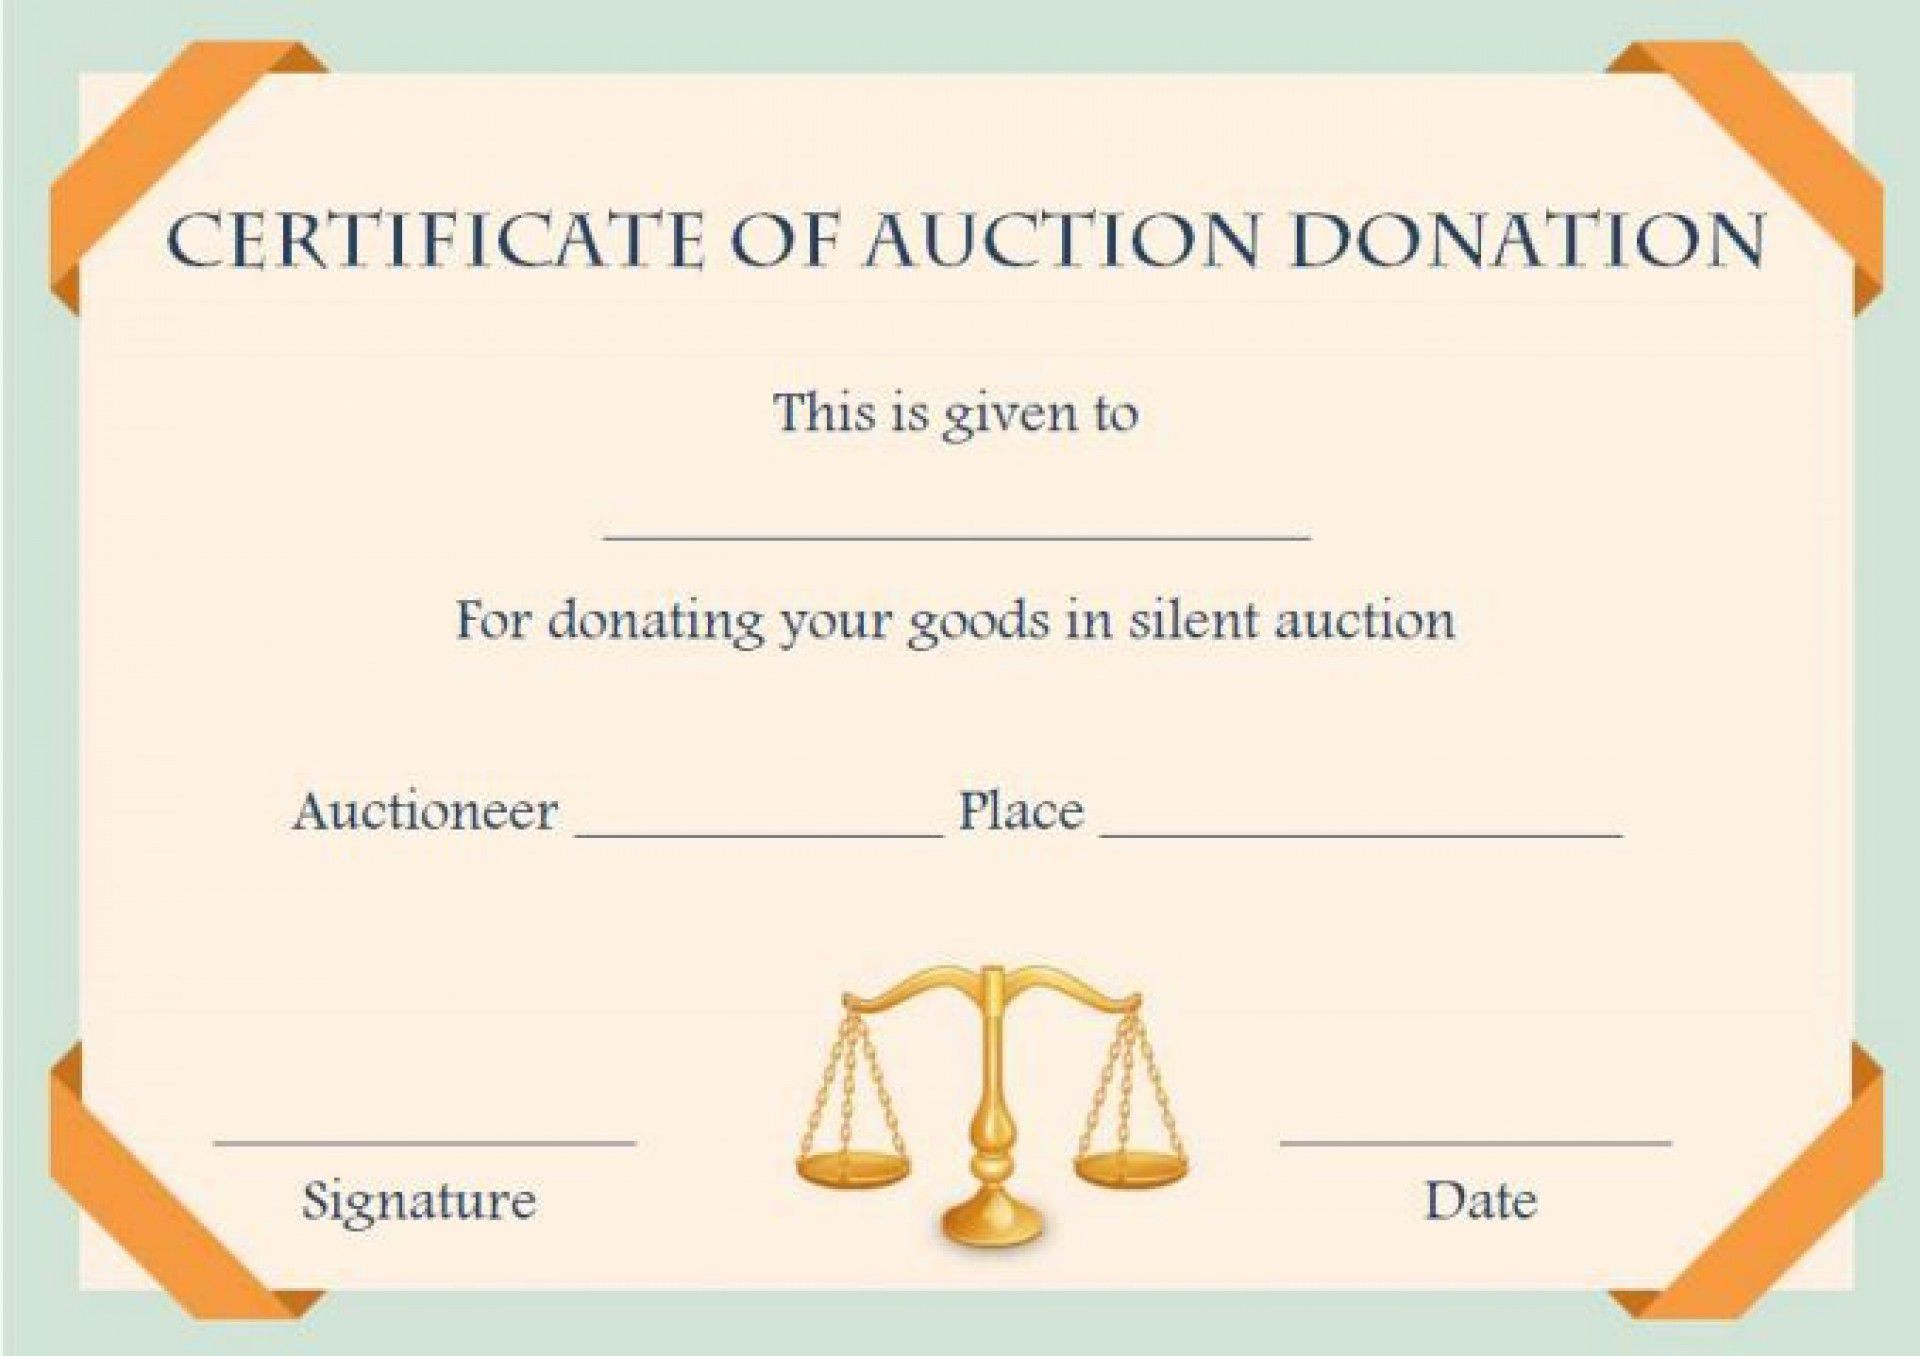 008 Awful Free Silent Auction Gift Certificate Template Photo Full